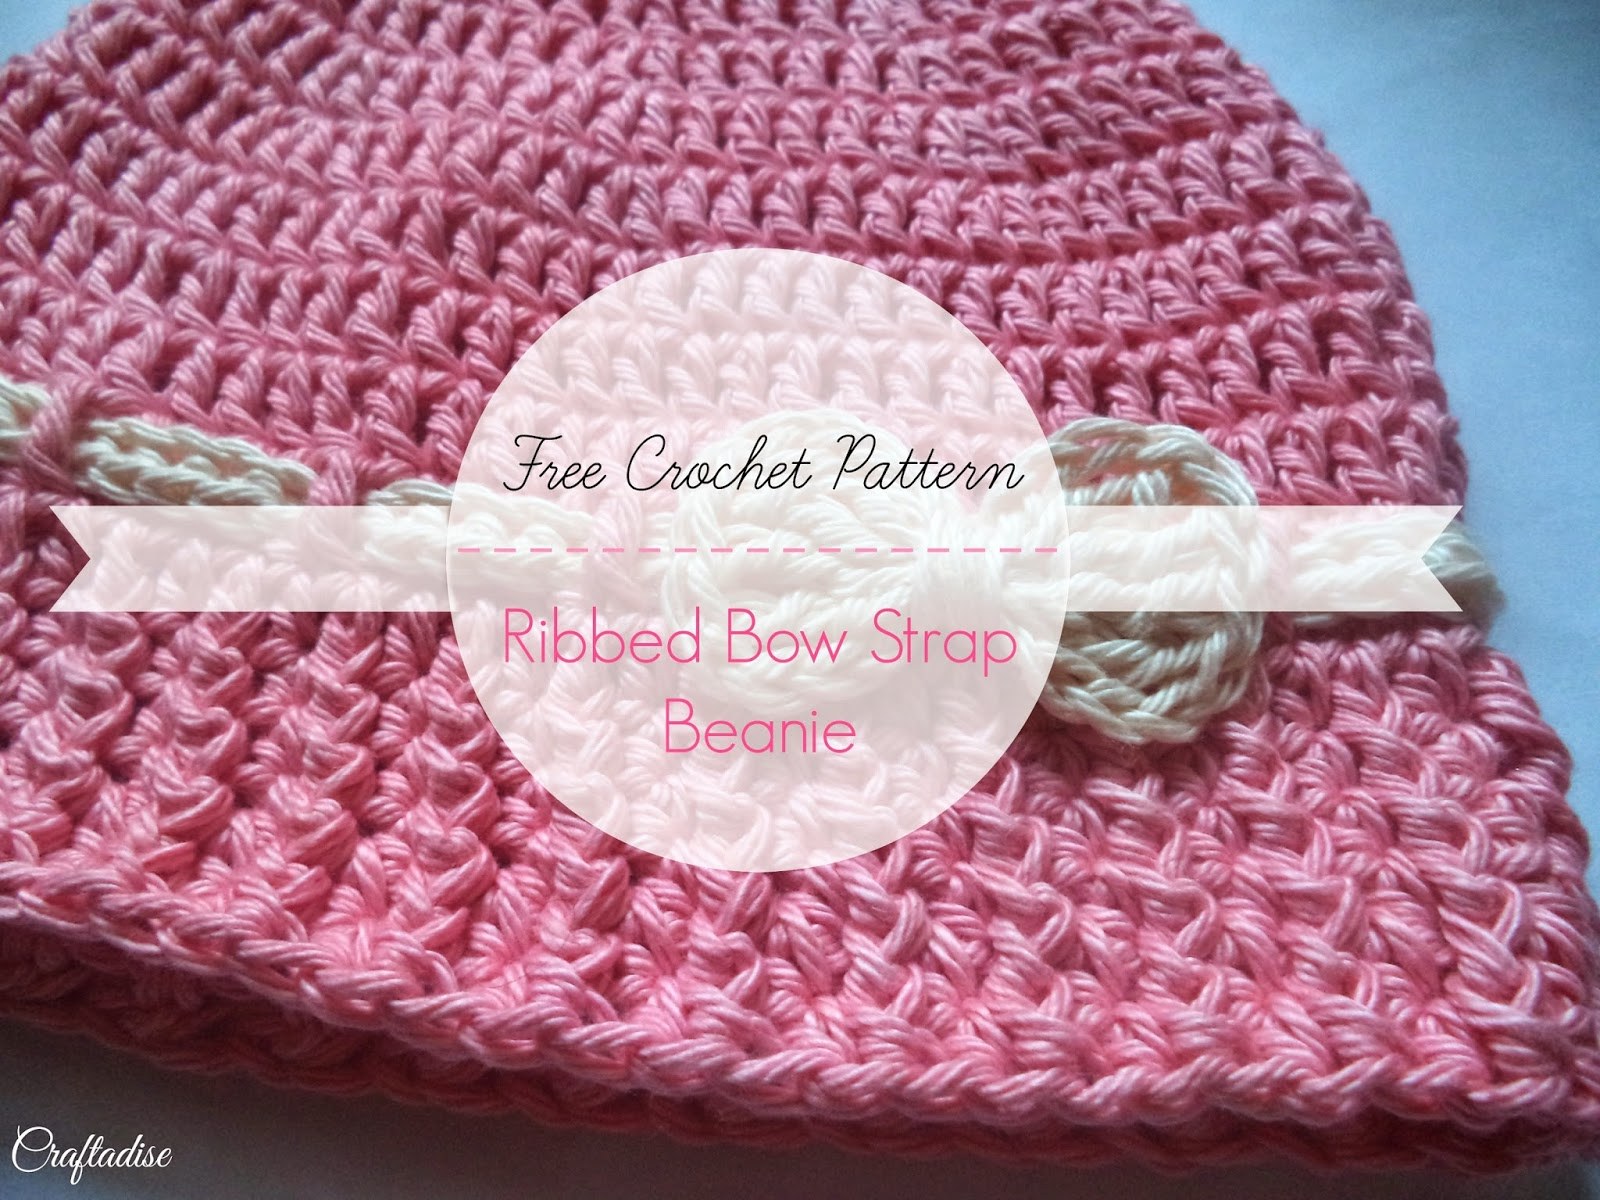 Free Crochet Pattern: Ribbed-Bow Strap Beanie